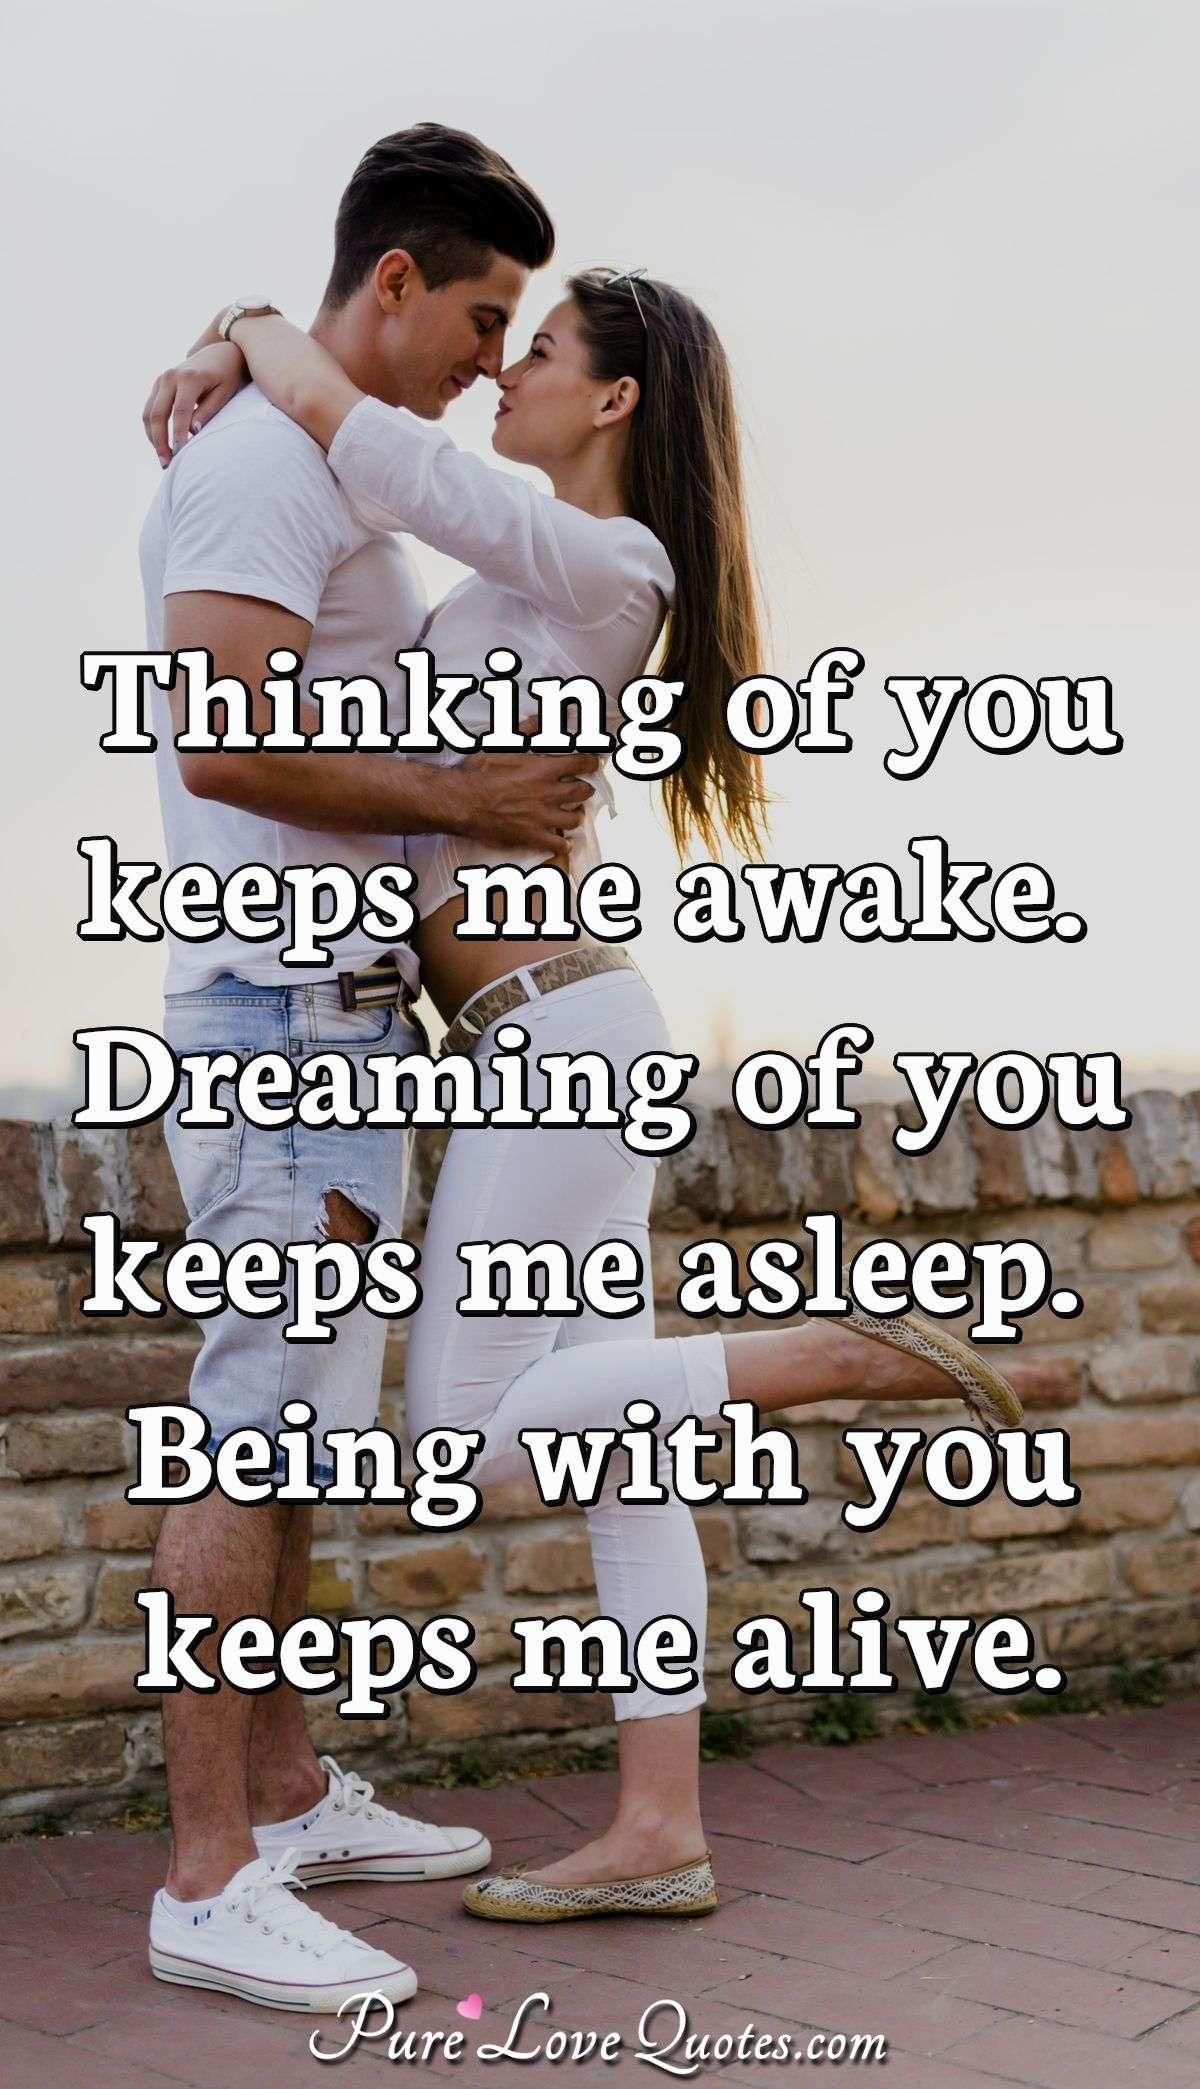 Thinking of you keeps me awake. Dreaming of you keeps me asleep. Being with you keeps me alive. - Anonymous